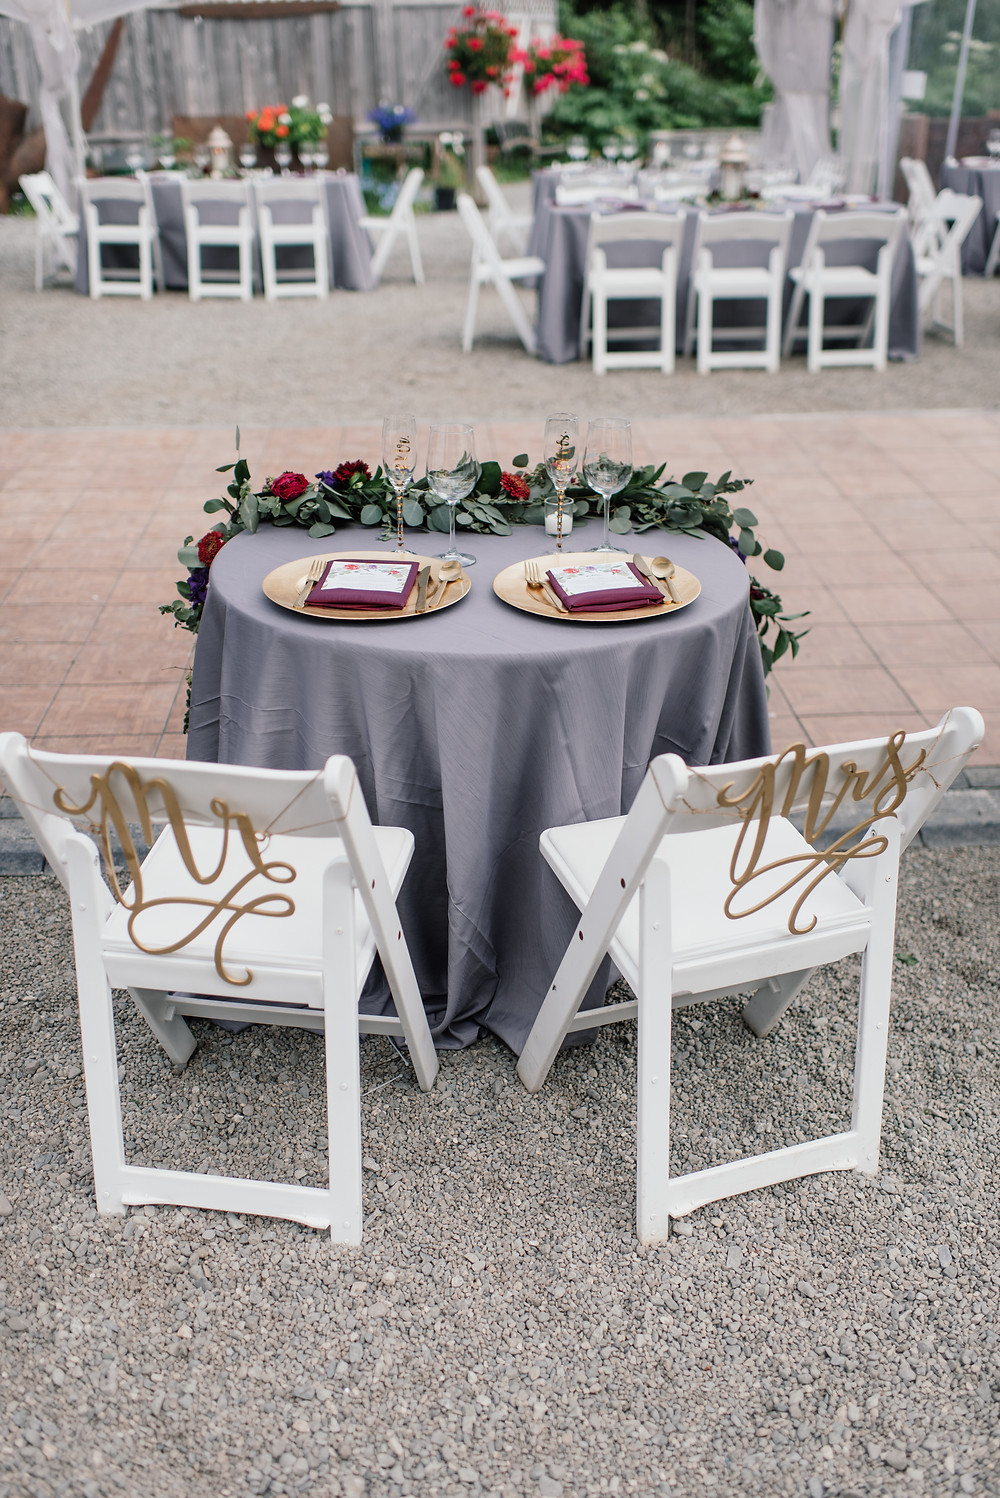 sweet heart table with charcoal and jewel tones, with floral garland